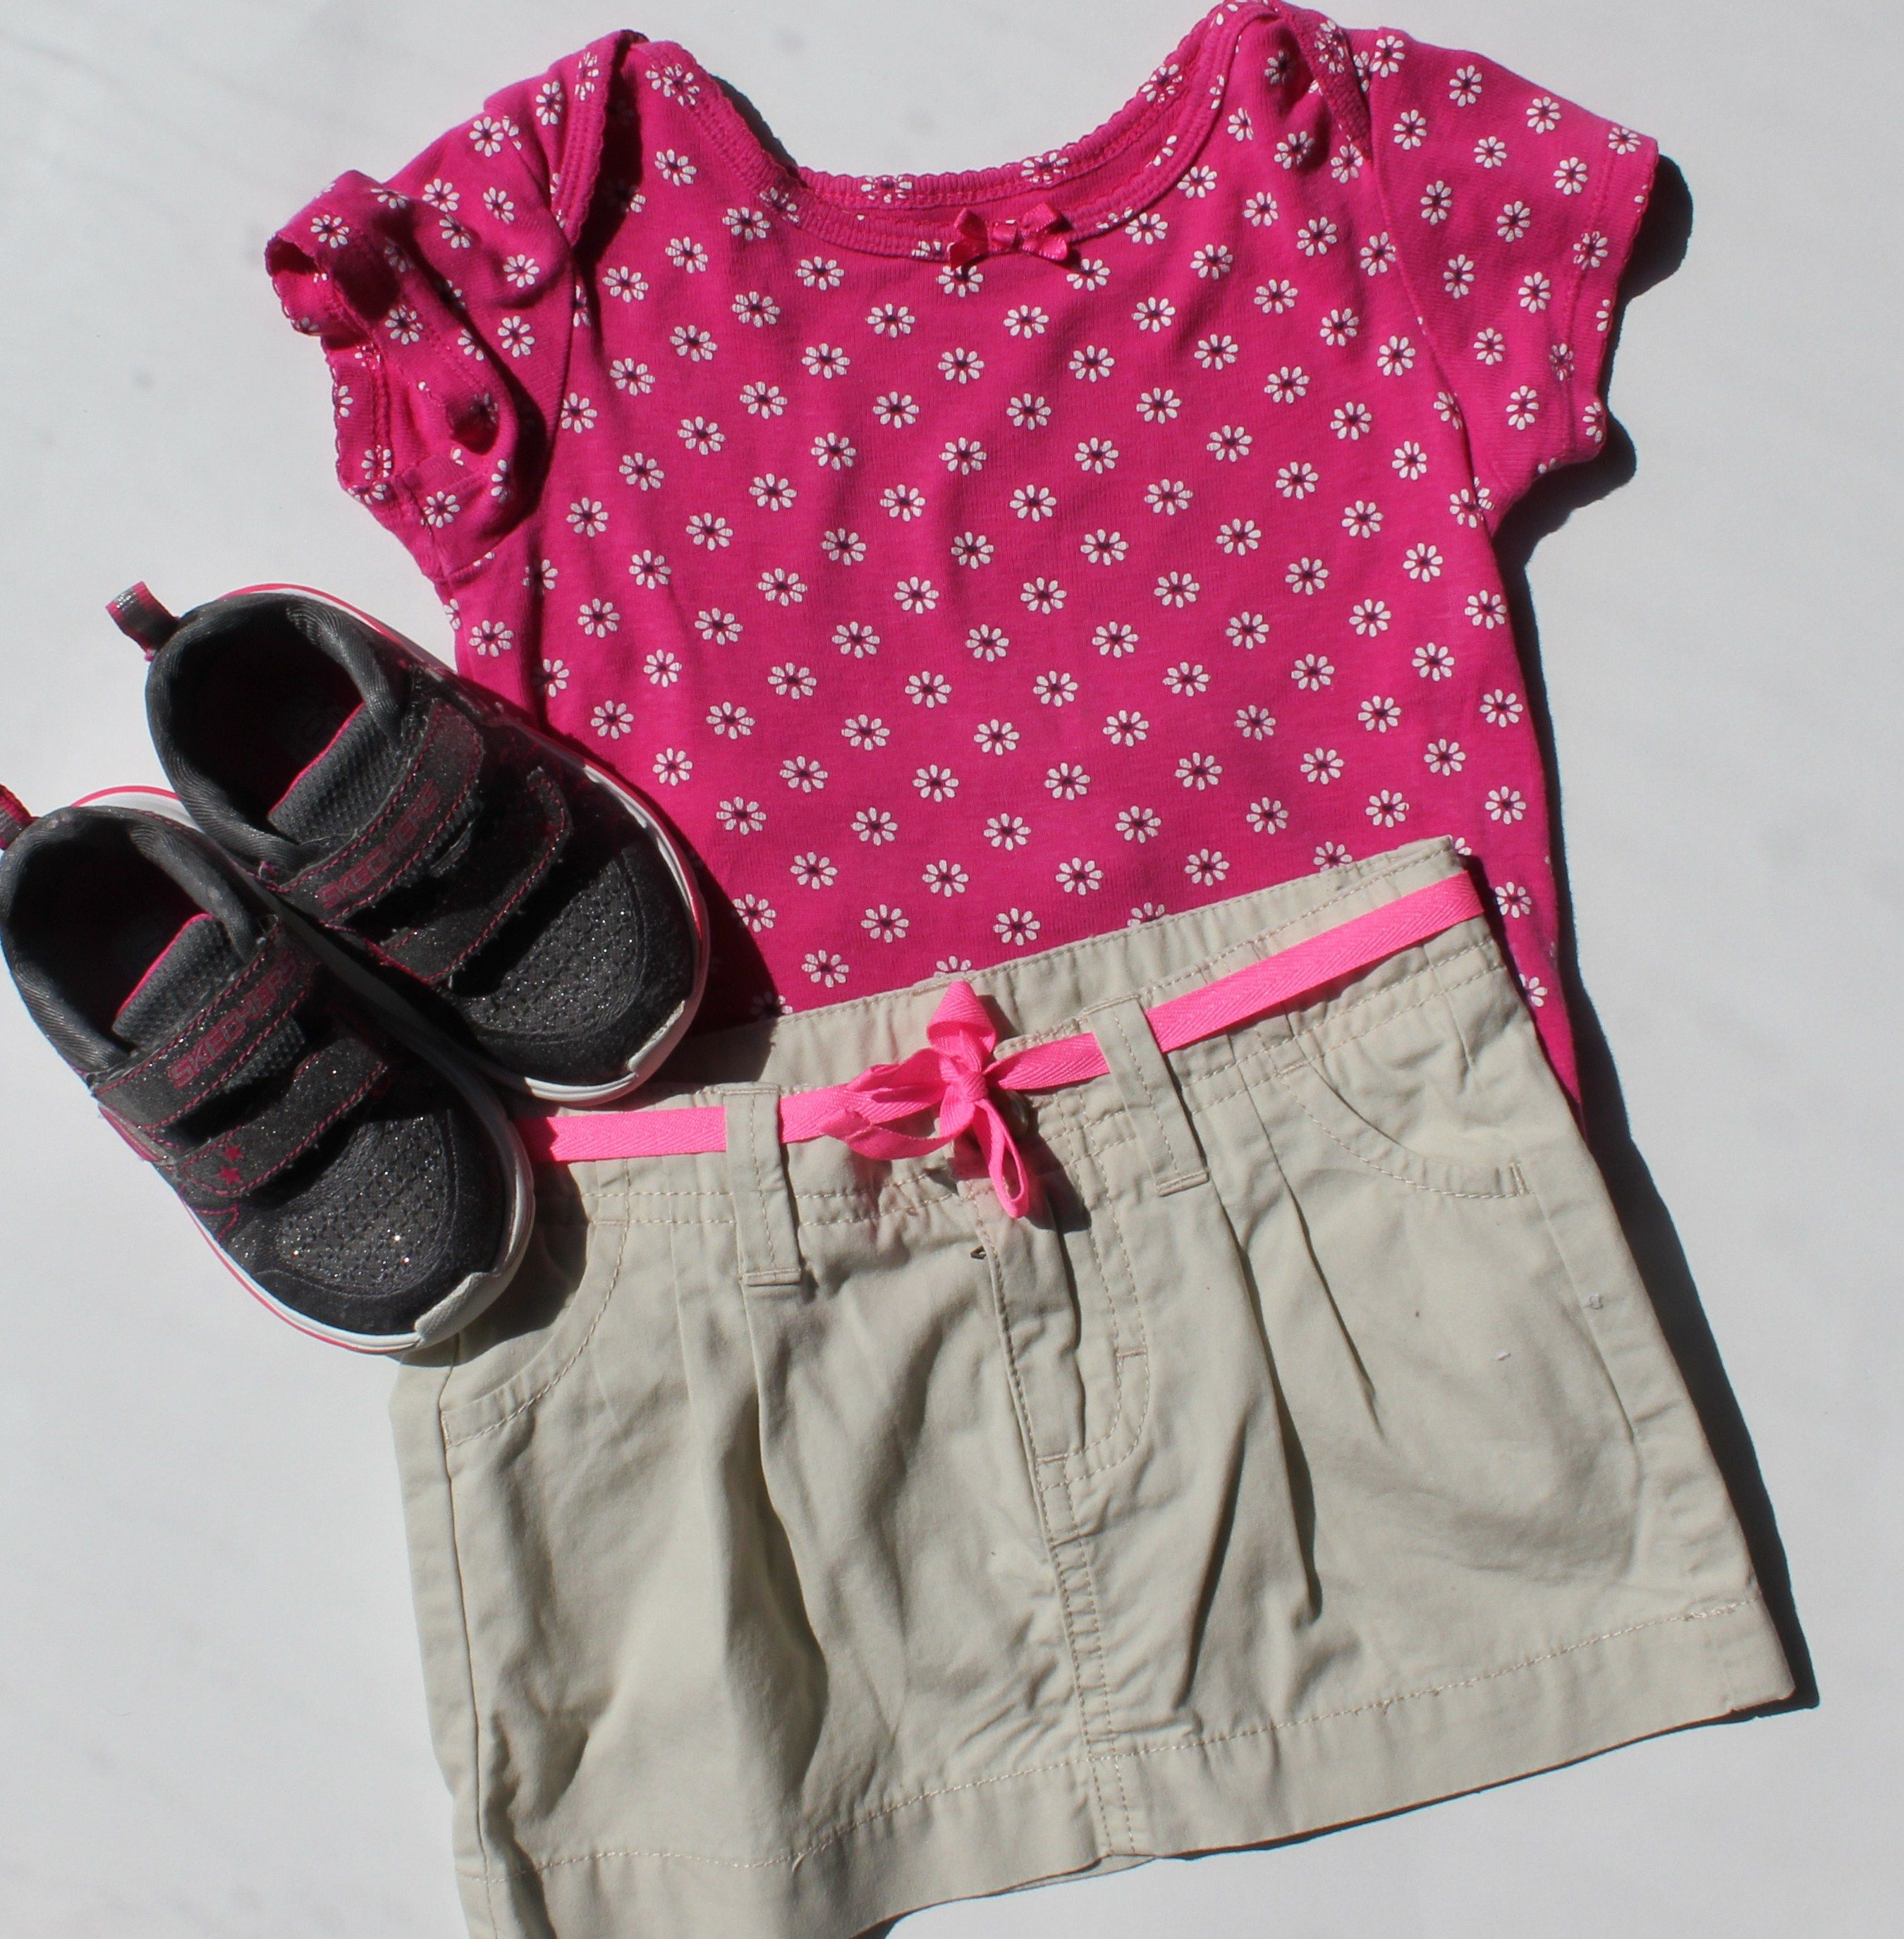 Baby Girl Outfit for Summer Size 18 Months Osh Kosh Skirt